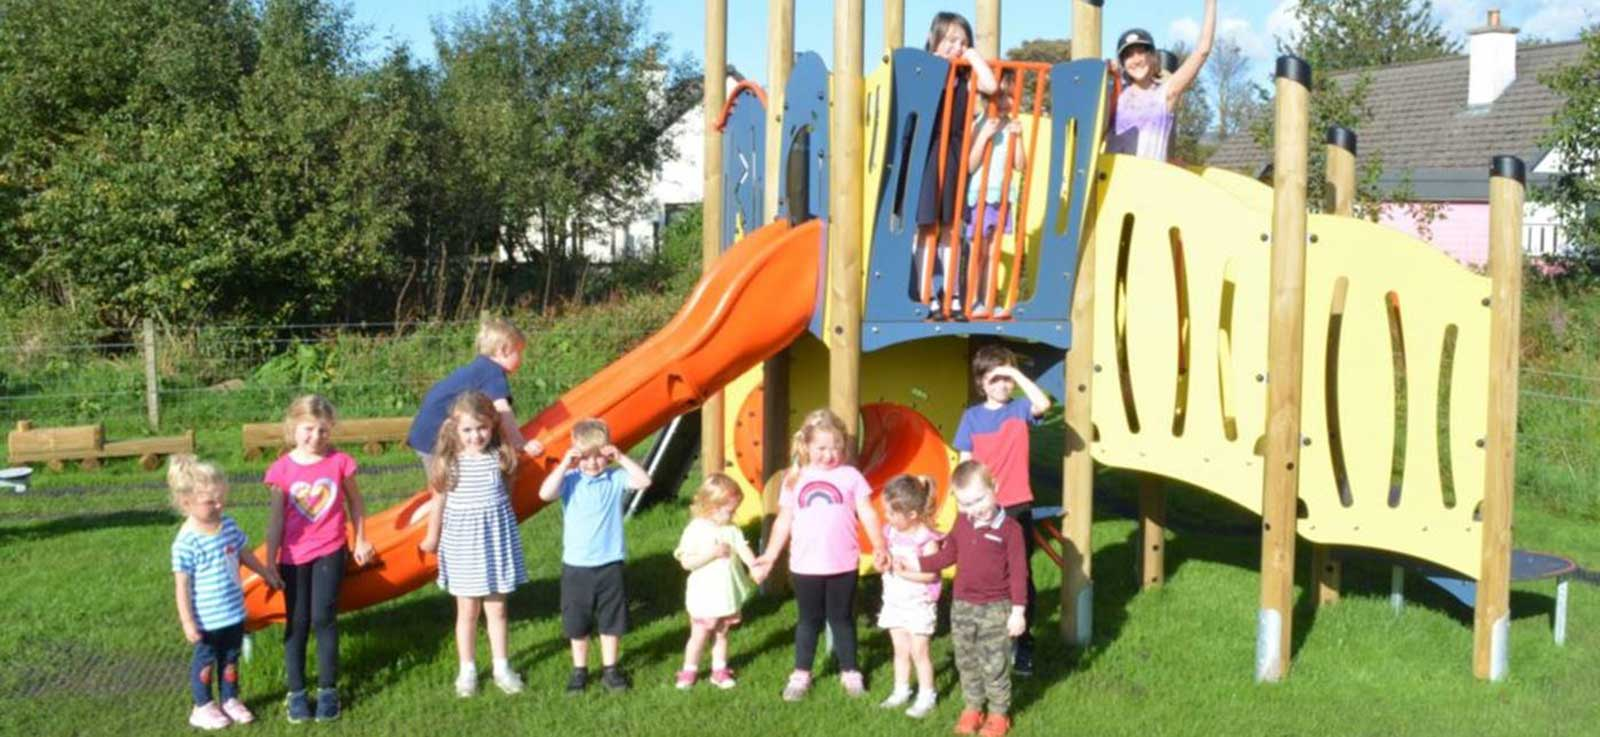 Appin community playpark